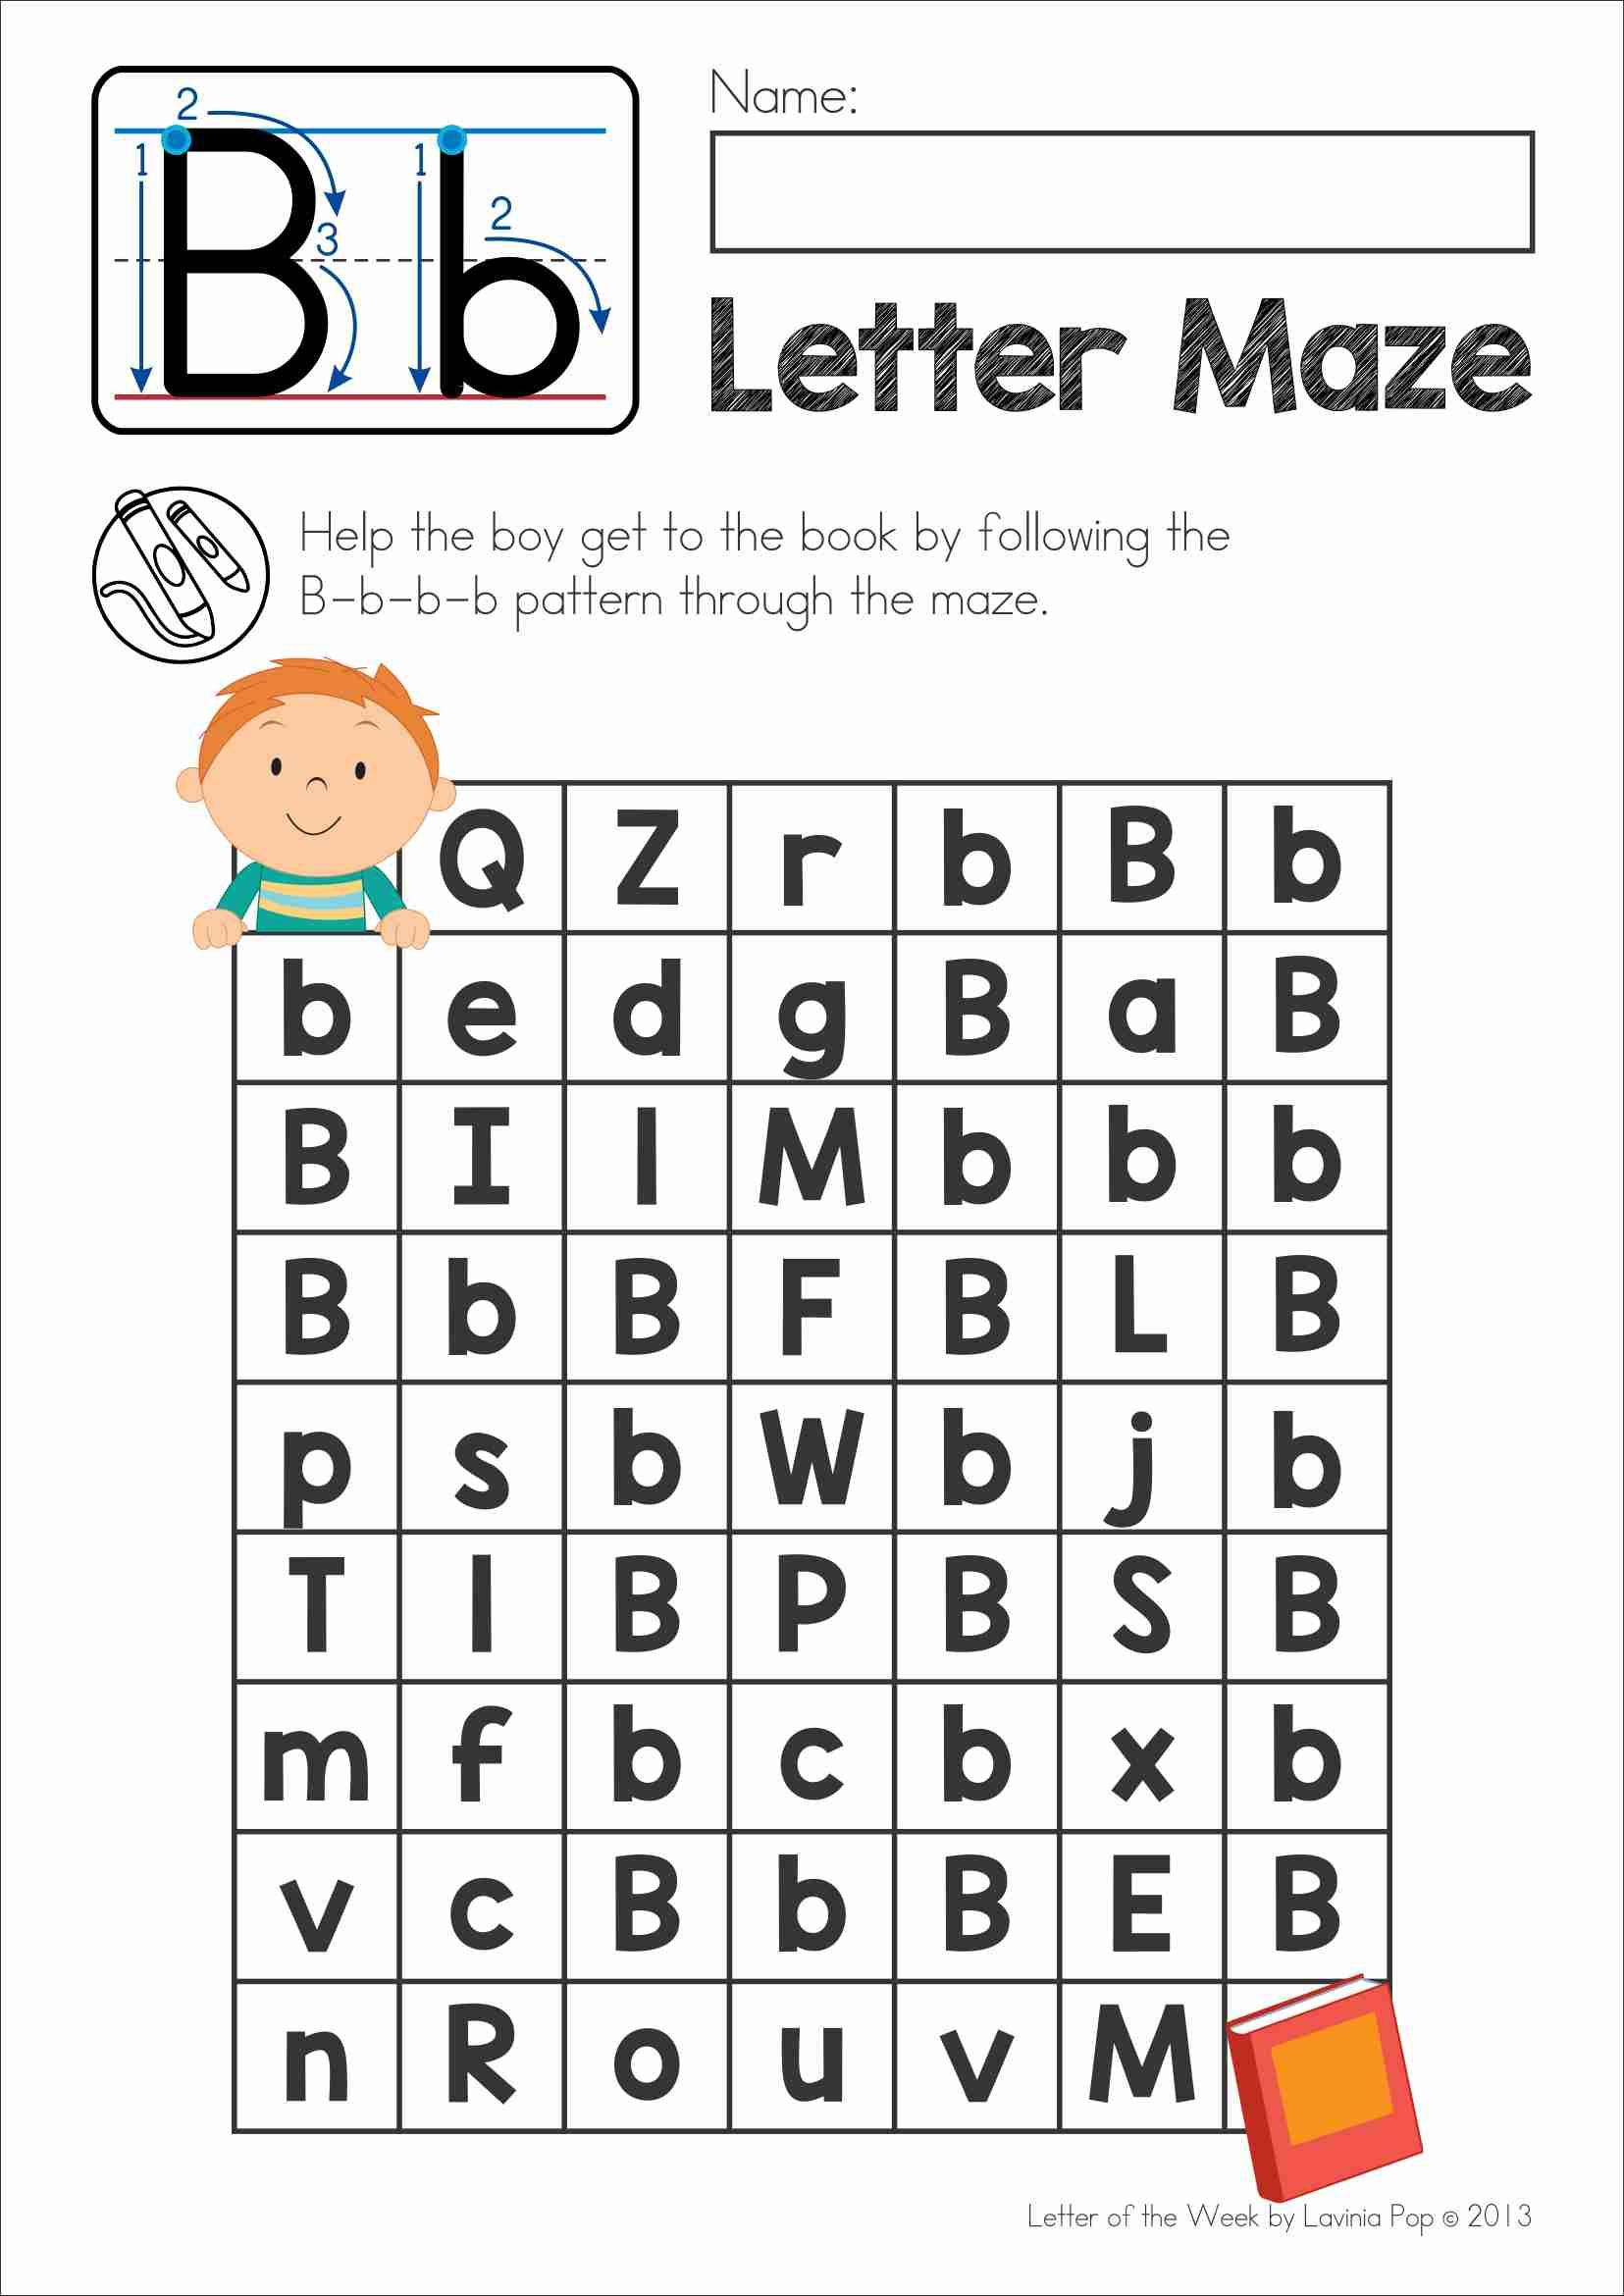 Free Phonics Letter Of The Week B Upper And Lower Case Letter Maze